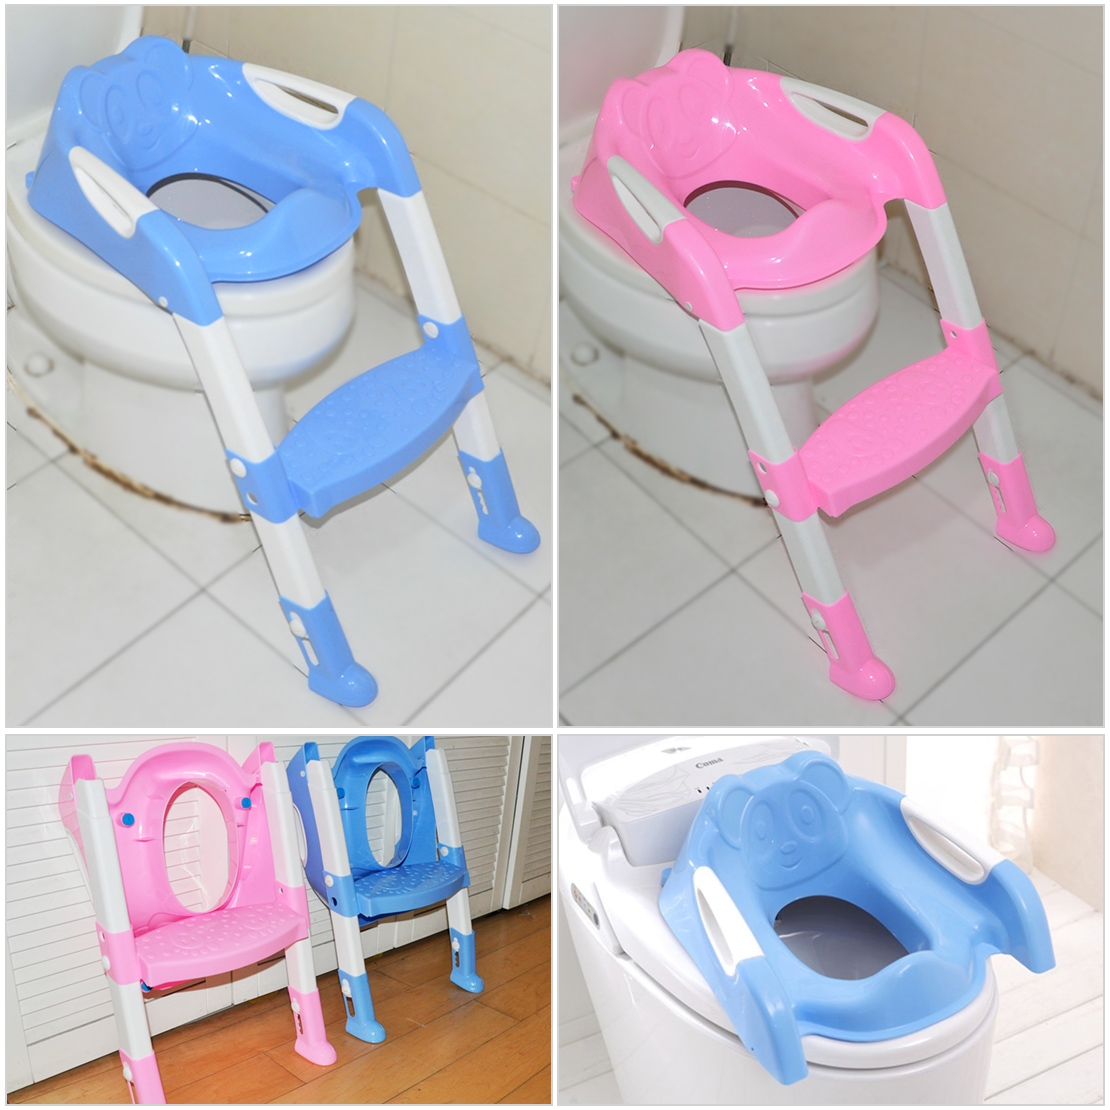 kids toilet potty trainer seat chair toddler with ladder step up training stool ebay. Black Bedroom Furniture Sets. Home Design Ideas